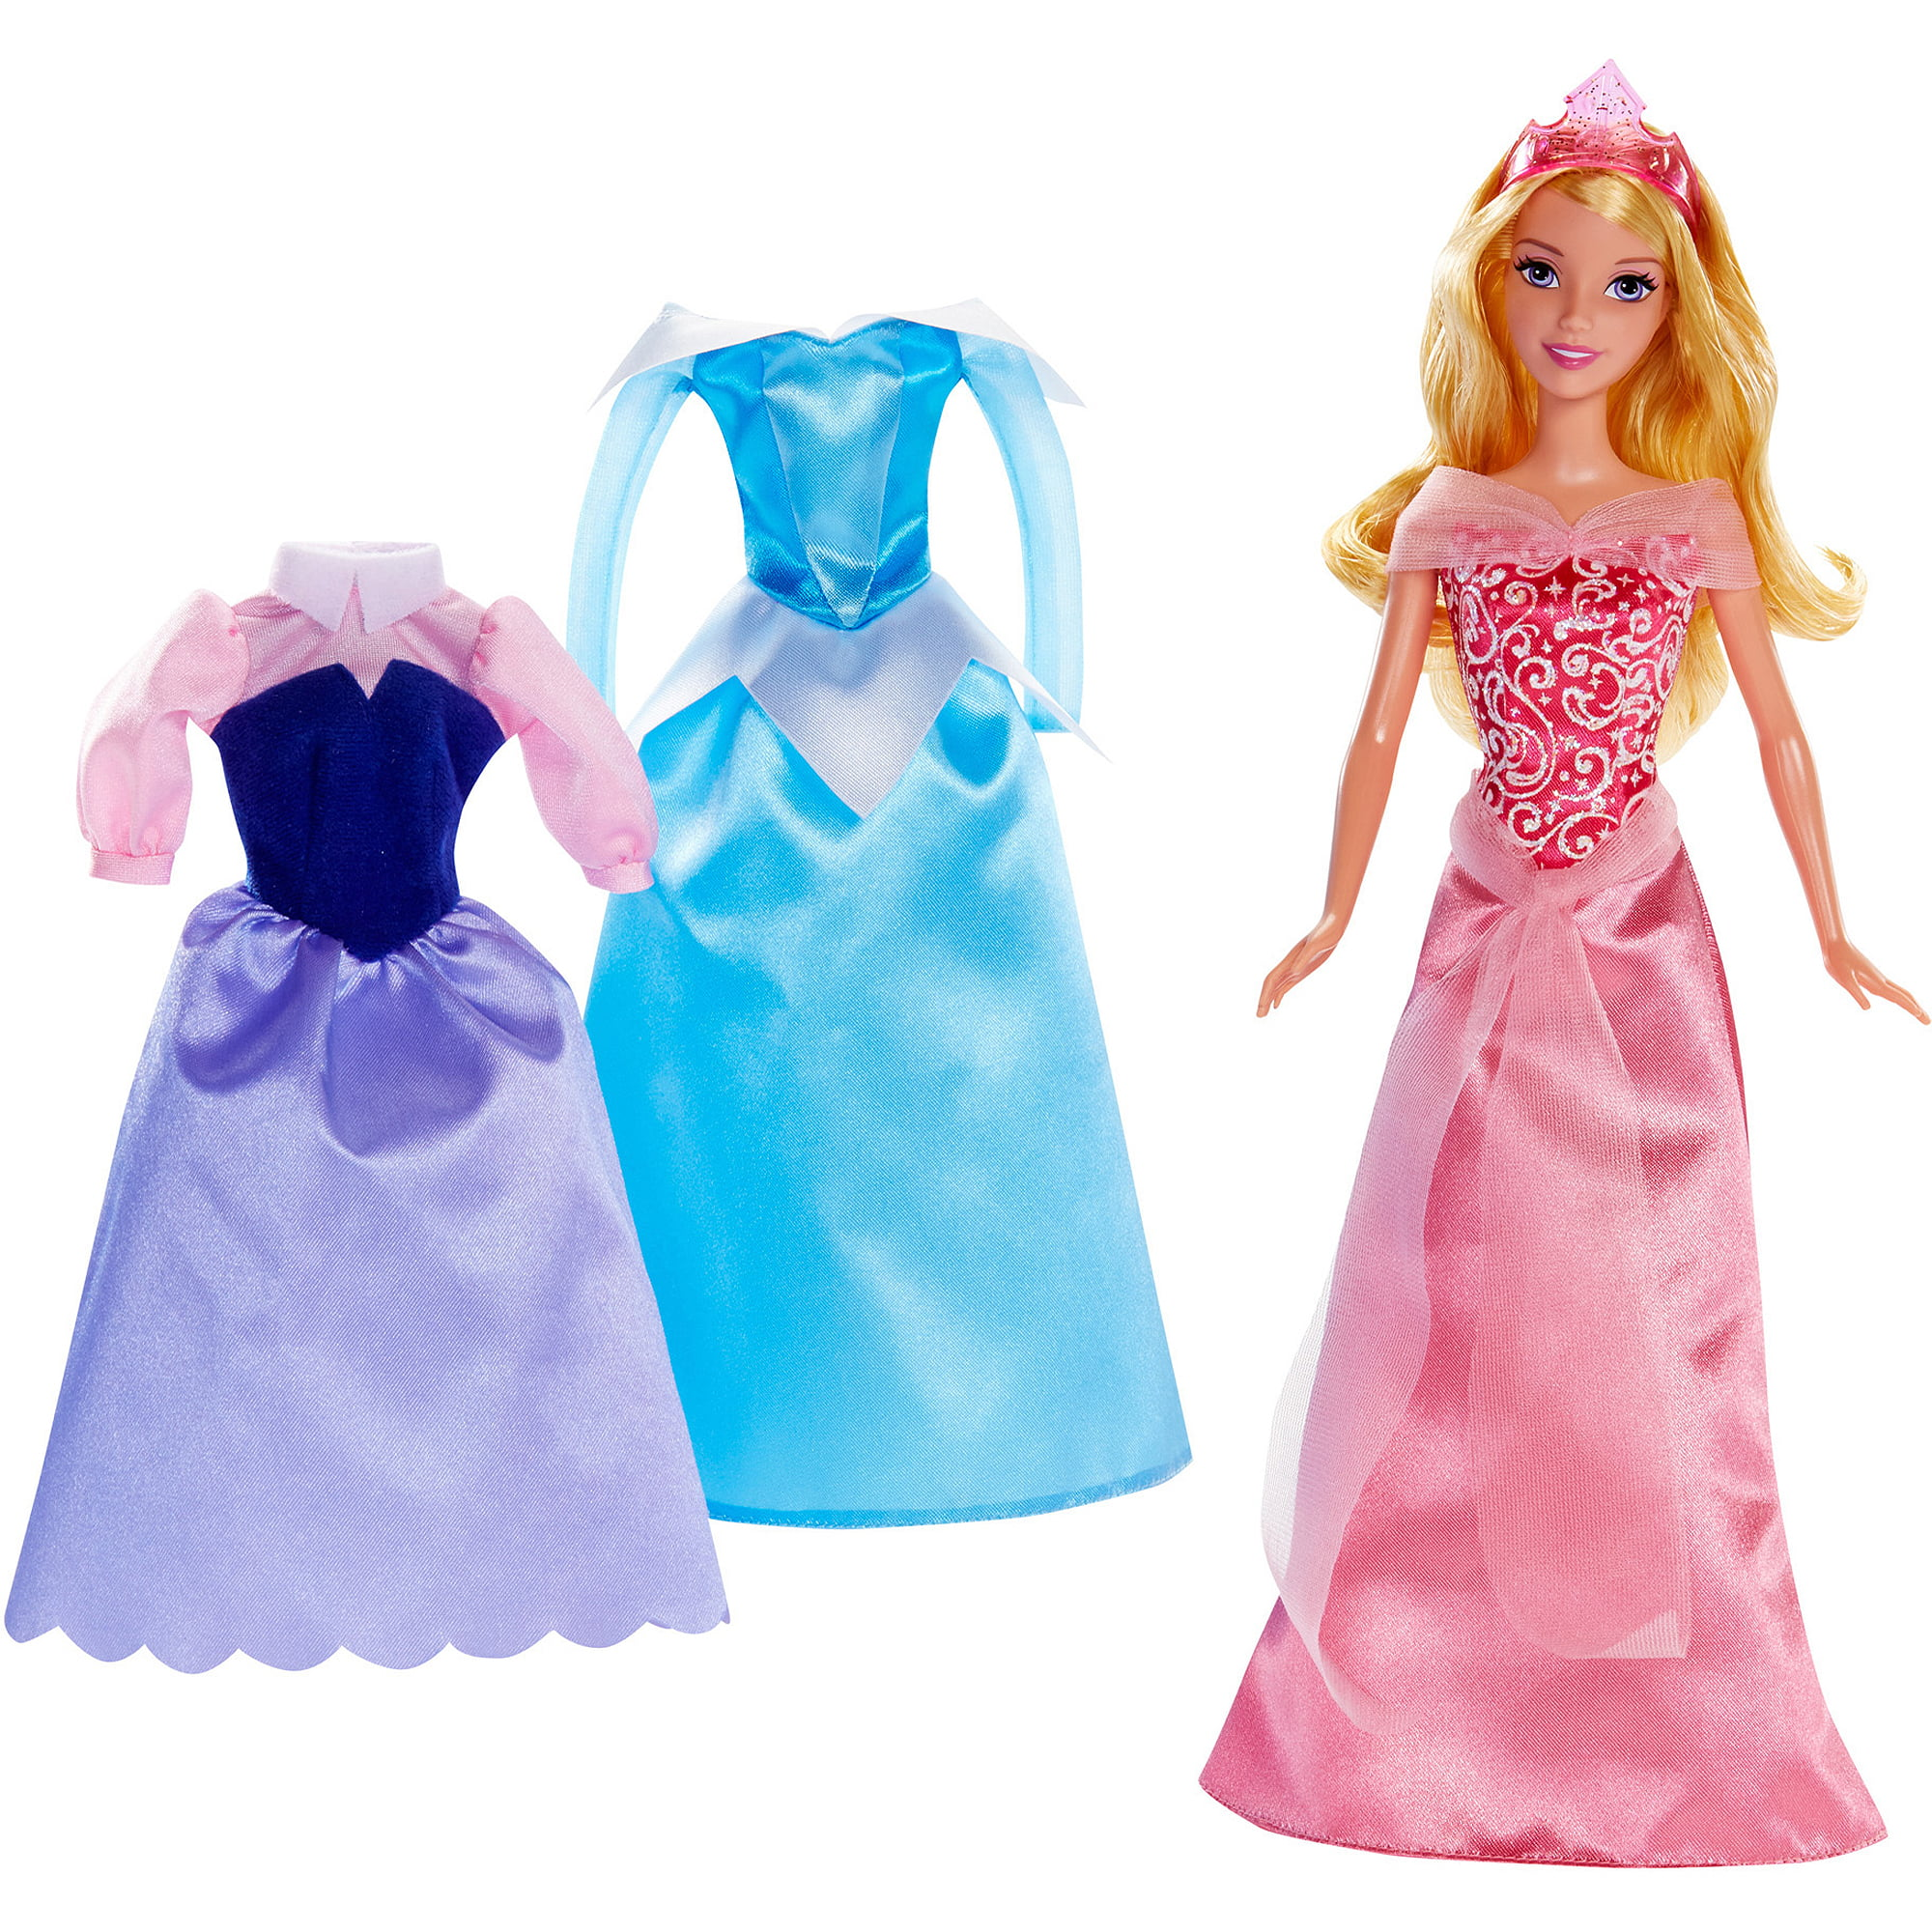 "Disney Princess Rags To Riches 12 piece 12"" Doll and Dress Set ly"